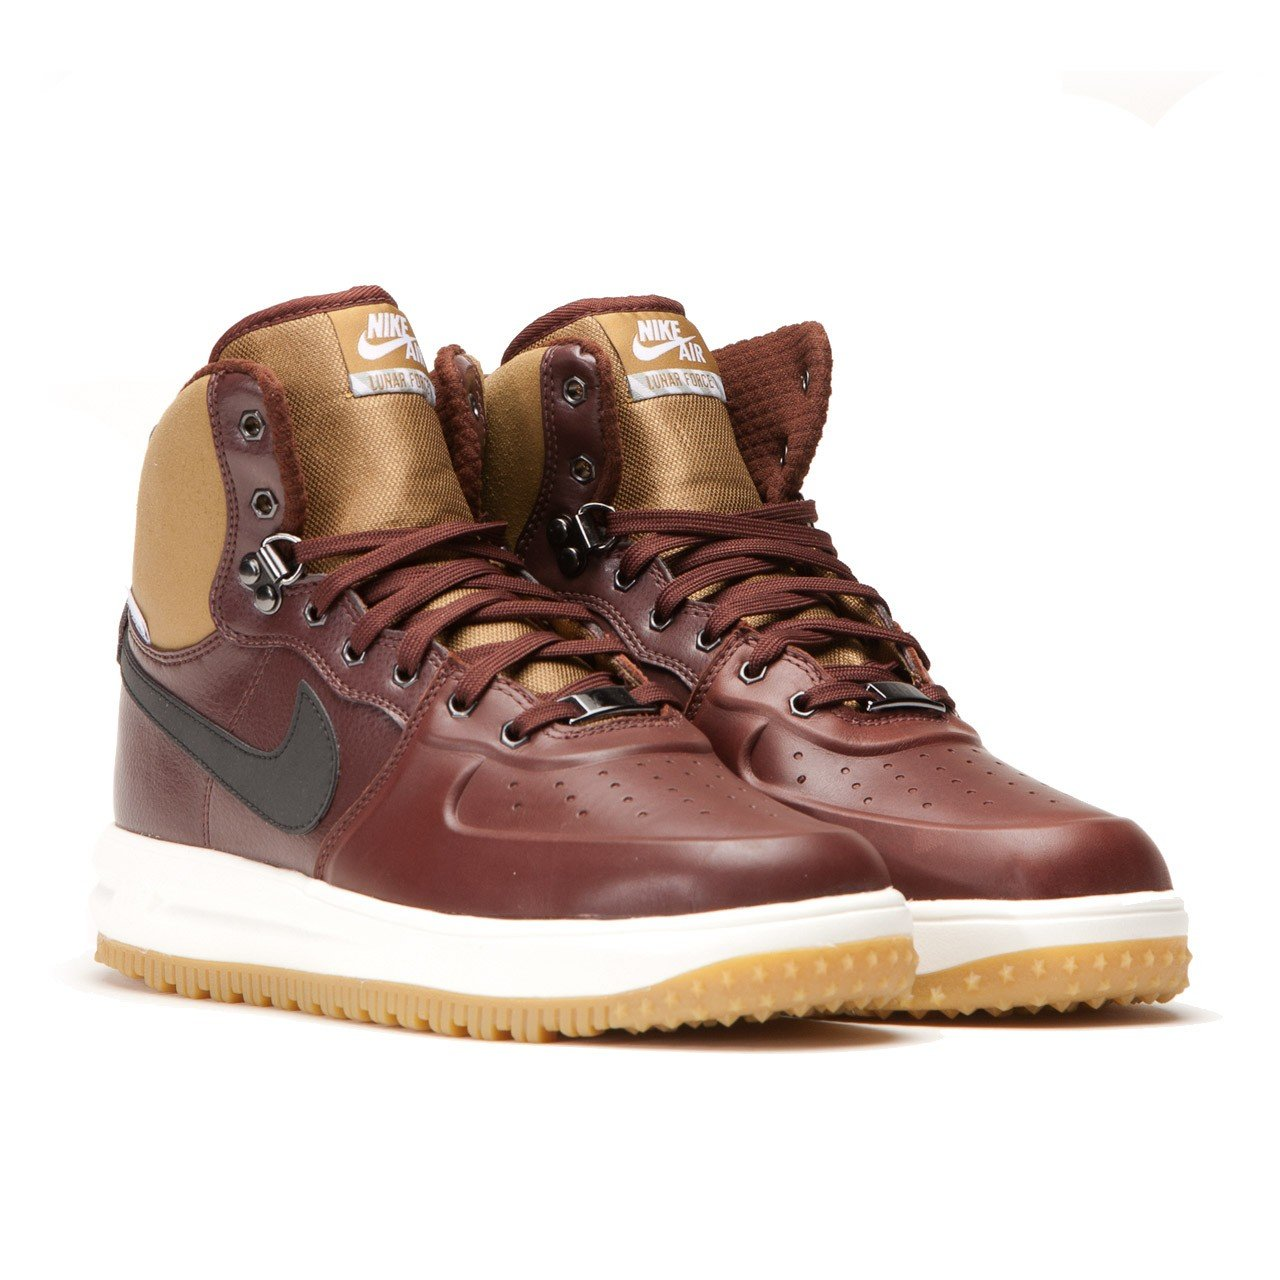 66d09a088a2dd4 NIKE Lunar Force 1 Sneakerboot